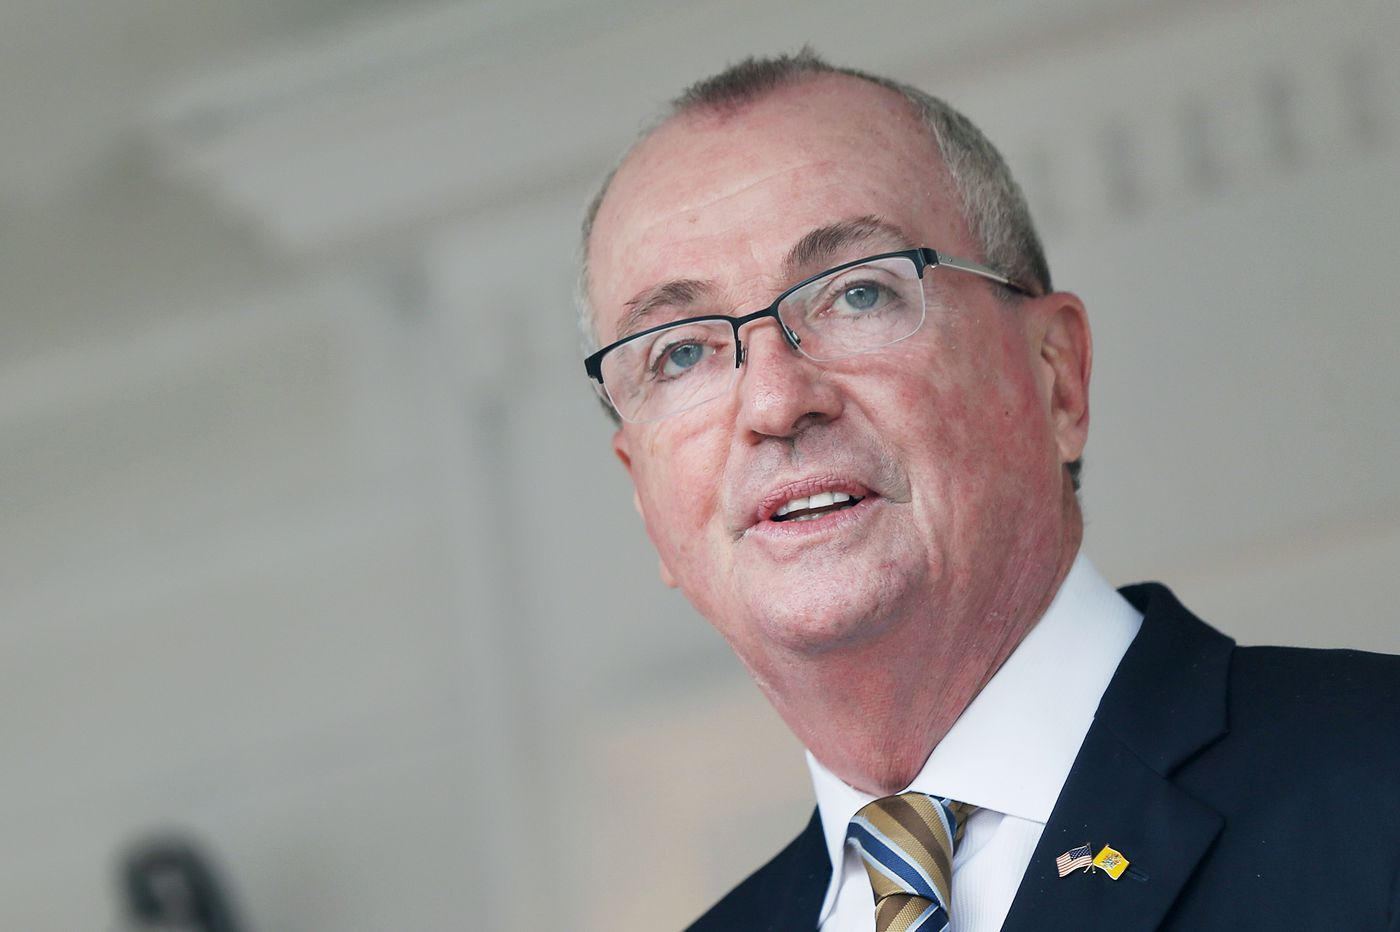 N.J. Gov. Murphy signs environmental justice law designed to protect minority communities